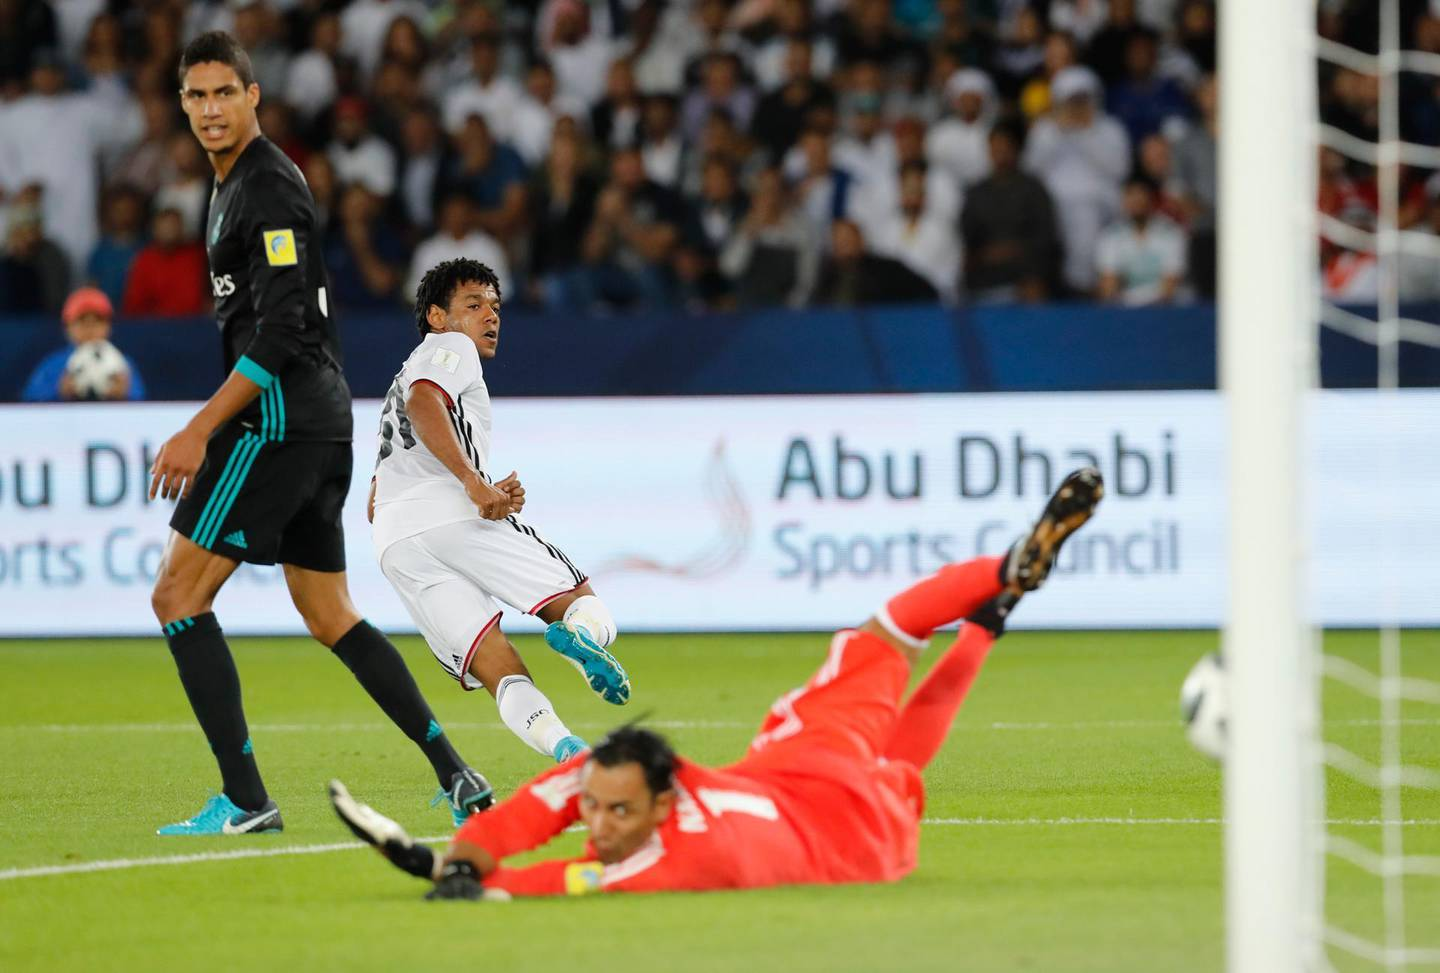 Al Jazira's Romarinho, left, scores the opening goal during the Club World Cup semifinal soccer match between Real Madrid and Al Jazira Club at Zayed sport city in Abu Dhabi, United Arab Emirates, Wednesday, Dec. 13, 2017. (AP Photo/Hassan Ammar)